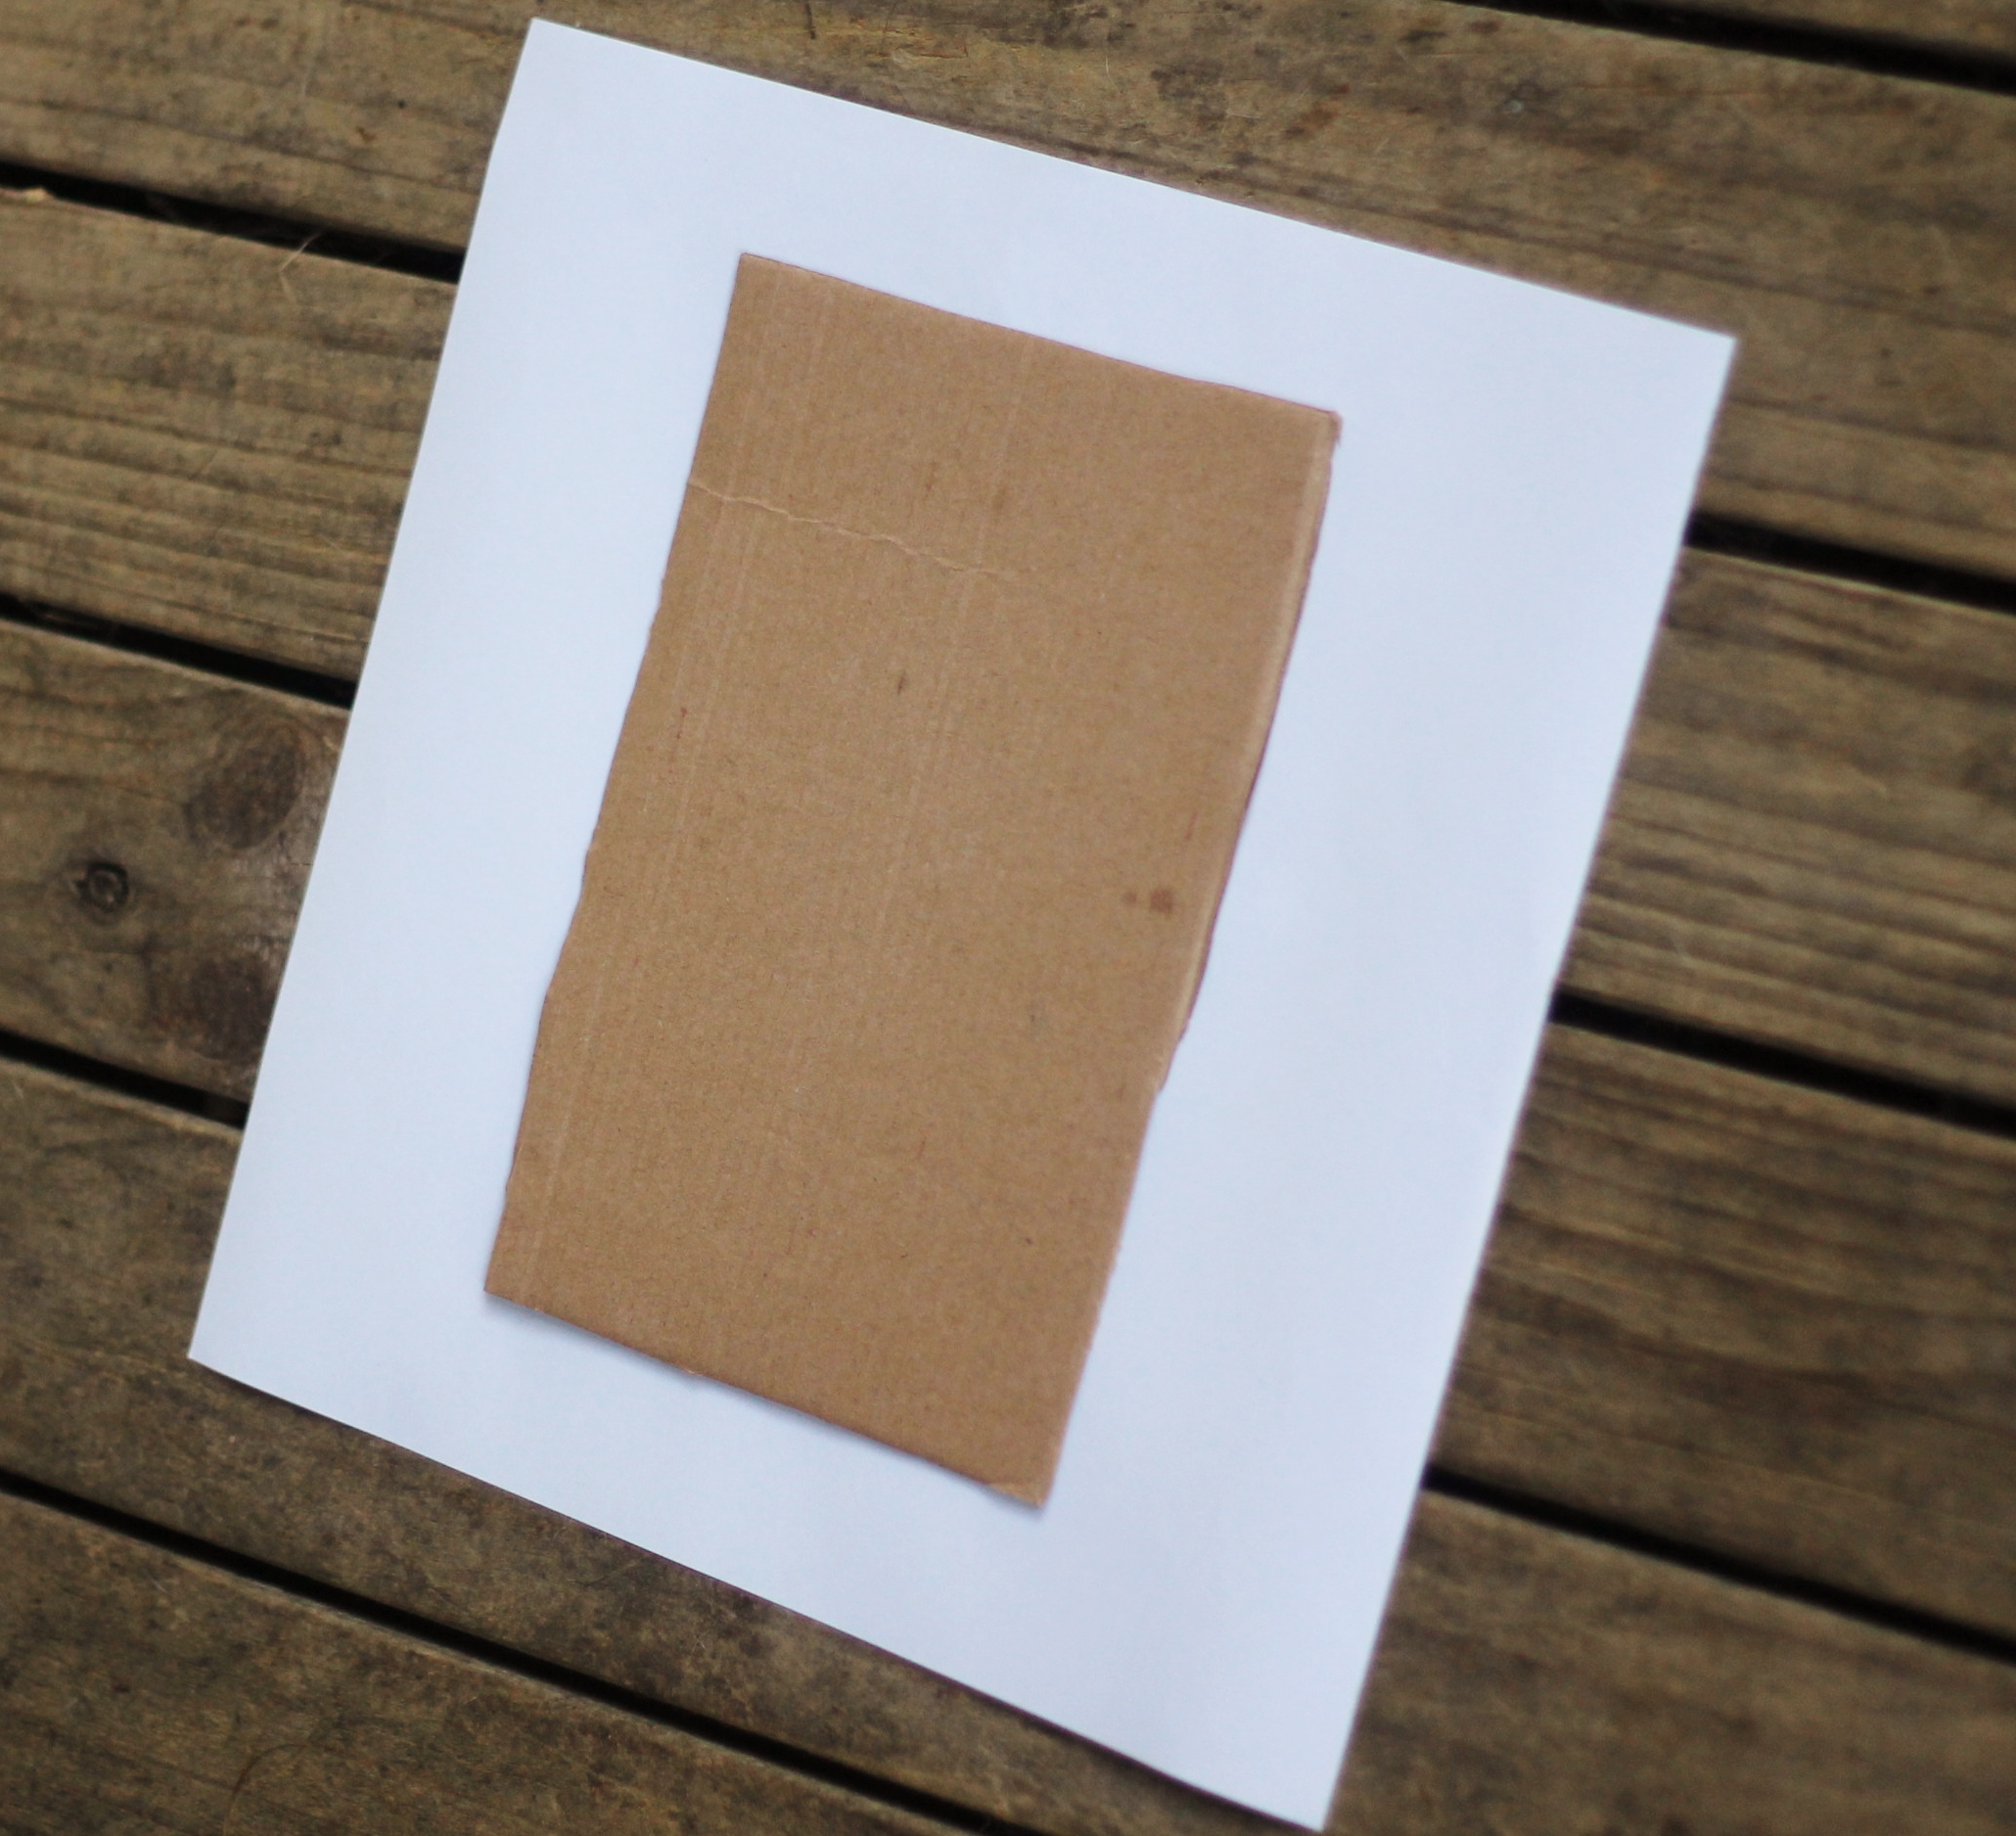 How to make scrapbook easy - Place 1 Half Of Cardboard Onto A Standard Square Of Scrapbooking Paper In Your Chosen Design For A Pretty Cover